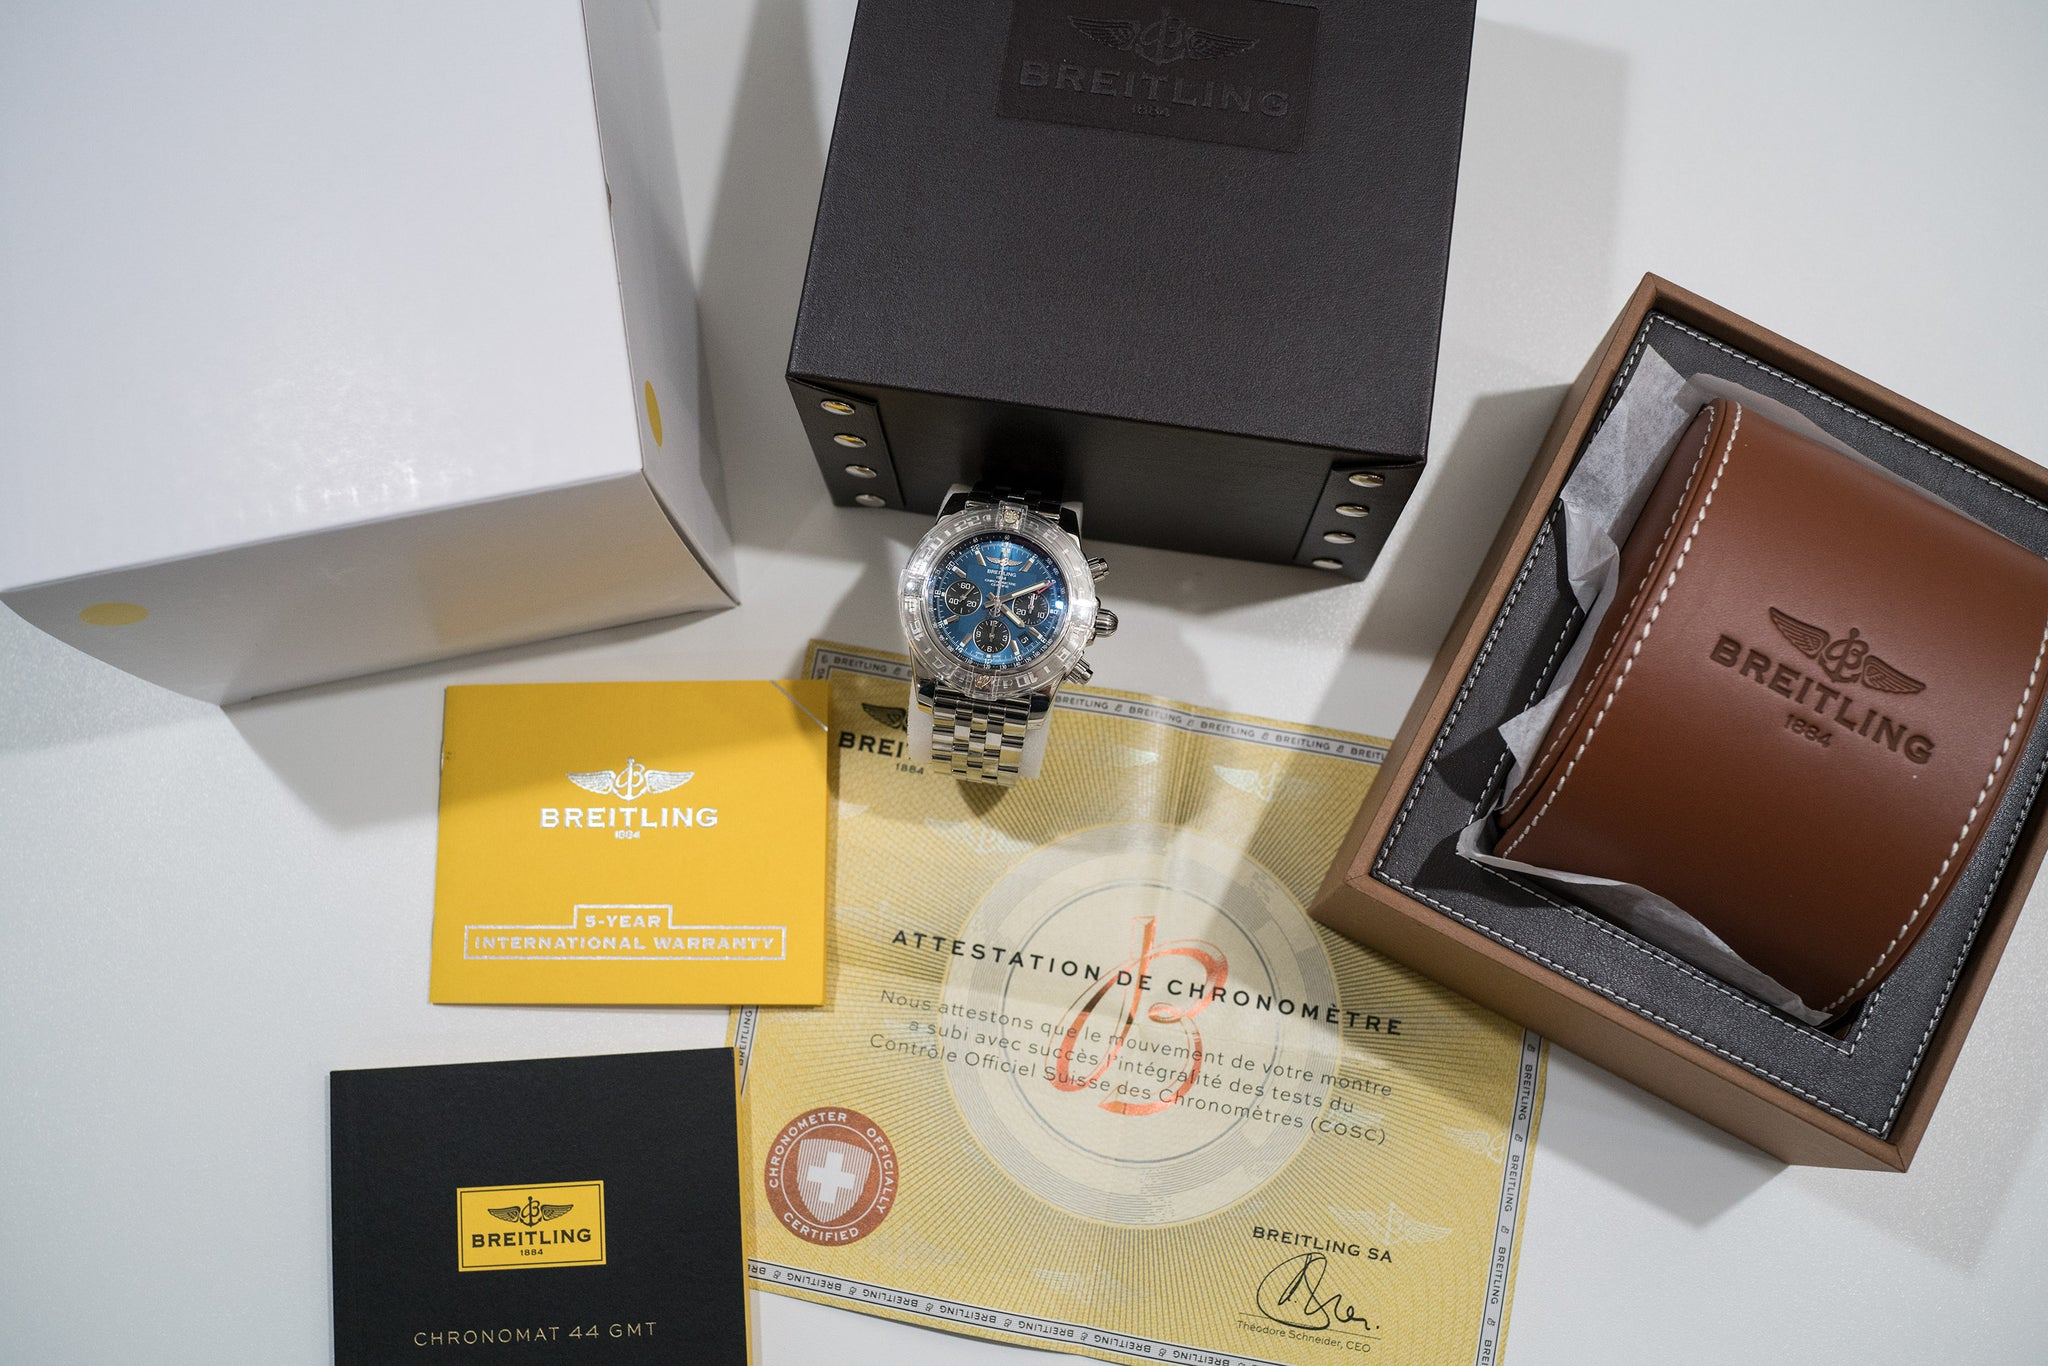 Breitling Chronomat 44 GMT Blue Dial Automatic In-House